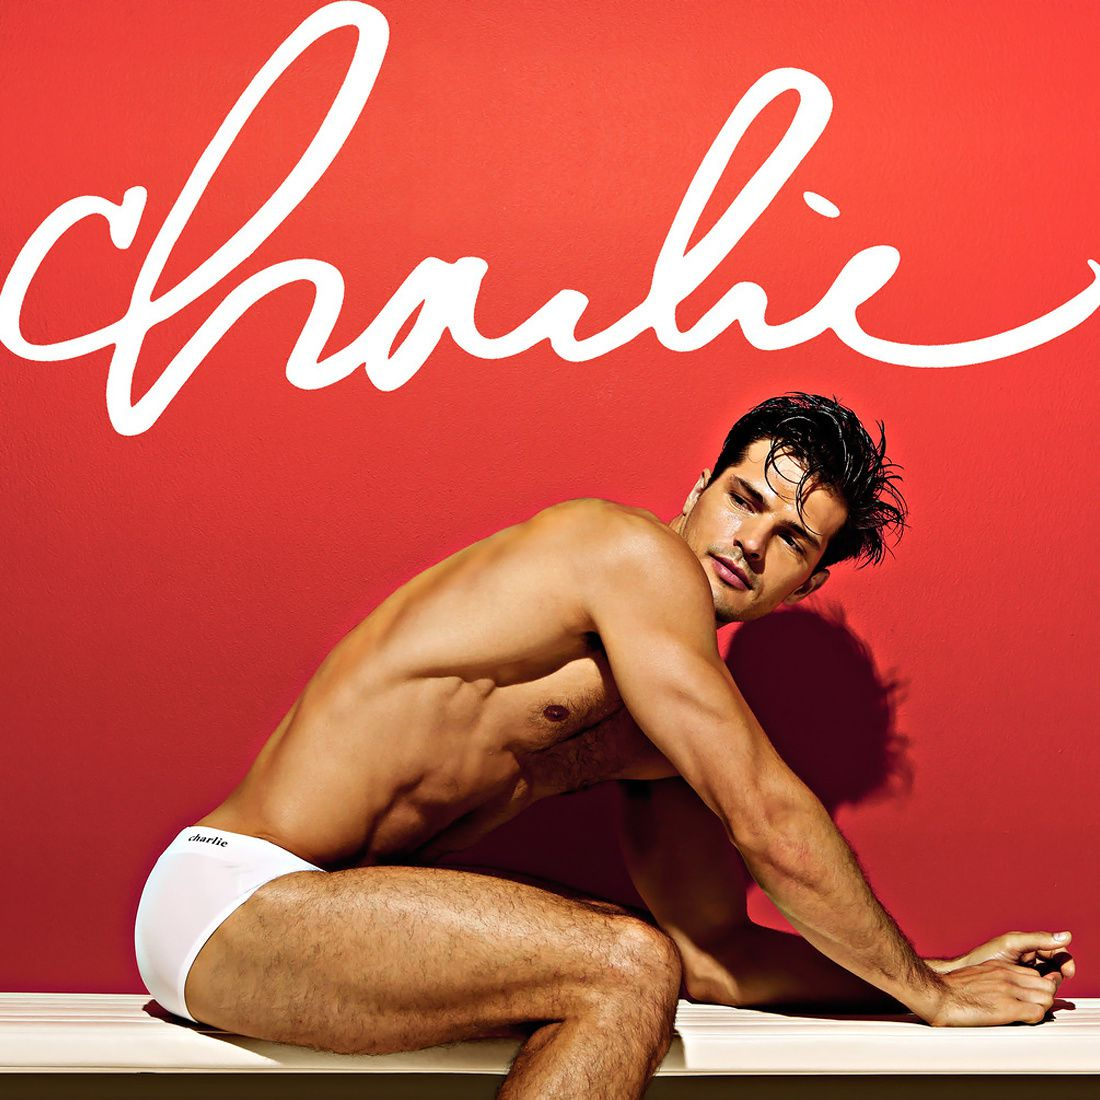 Diego Miguel pour Charlie by Matthew Zink